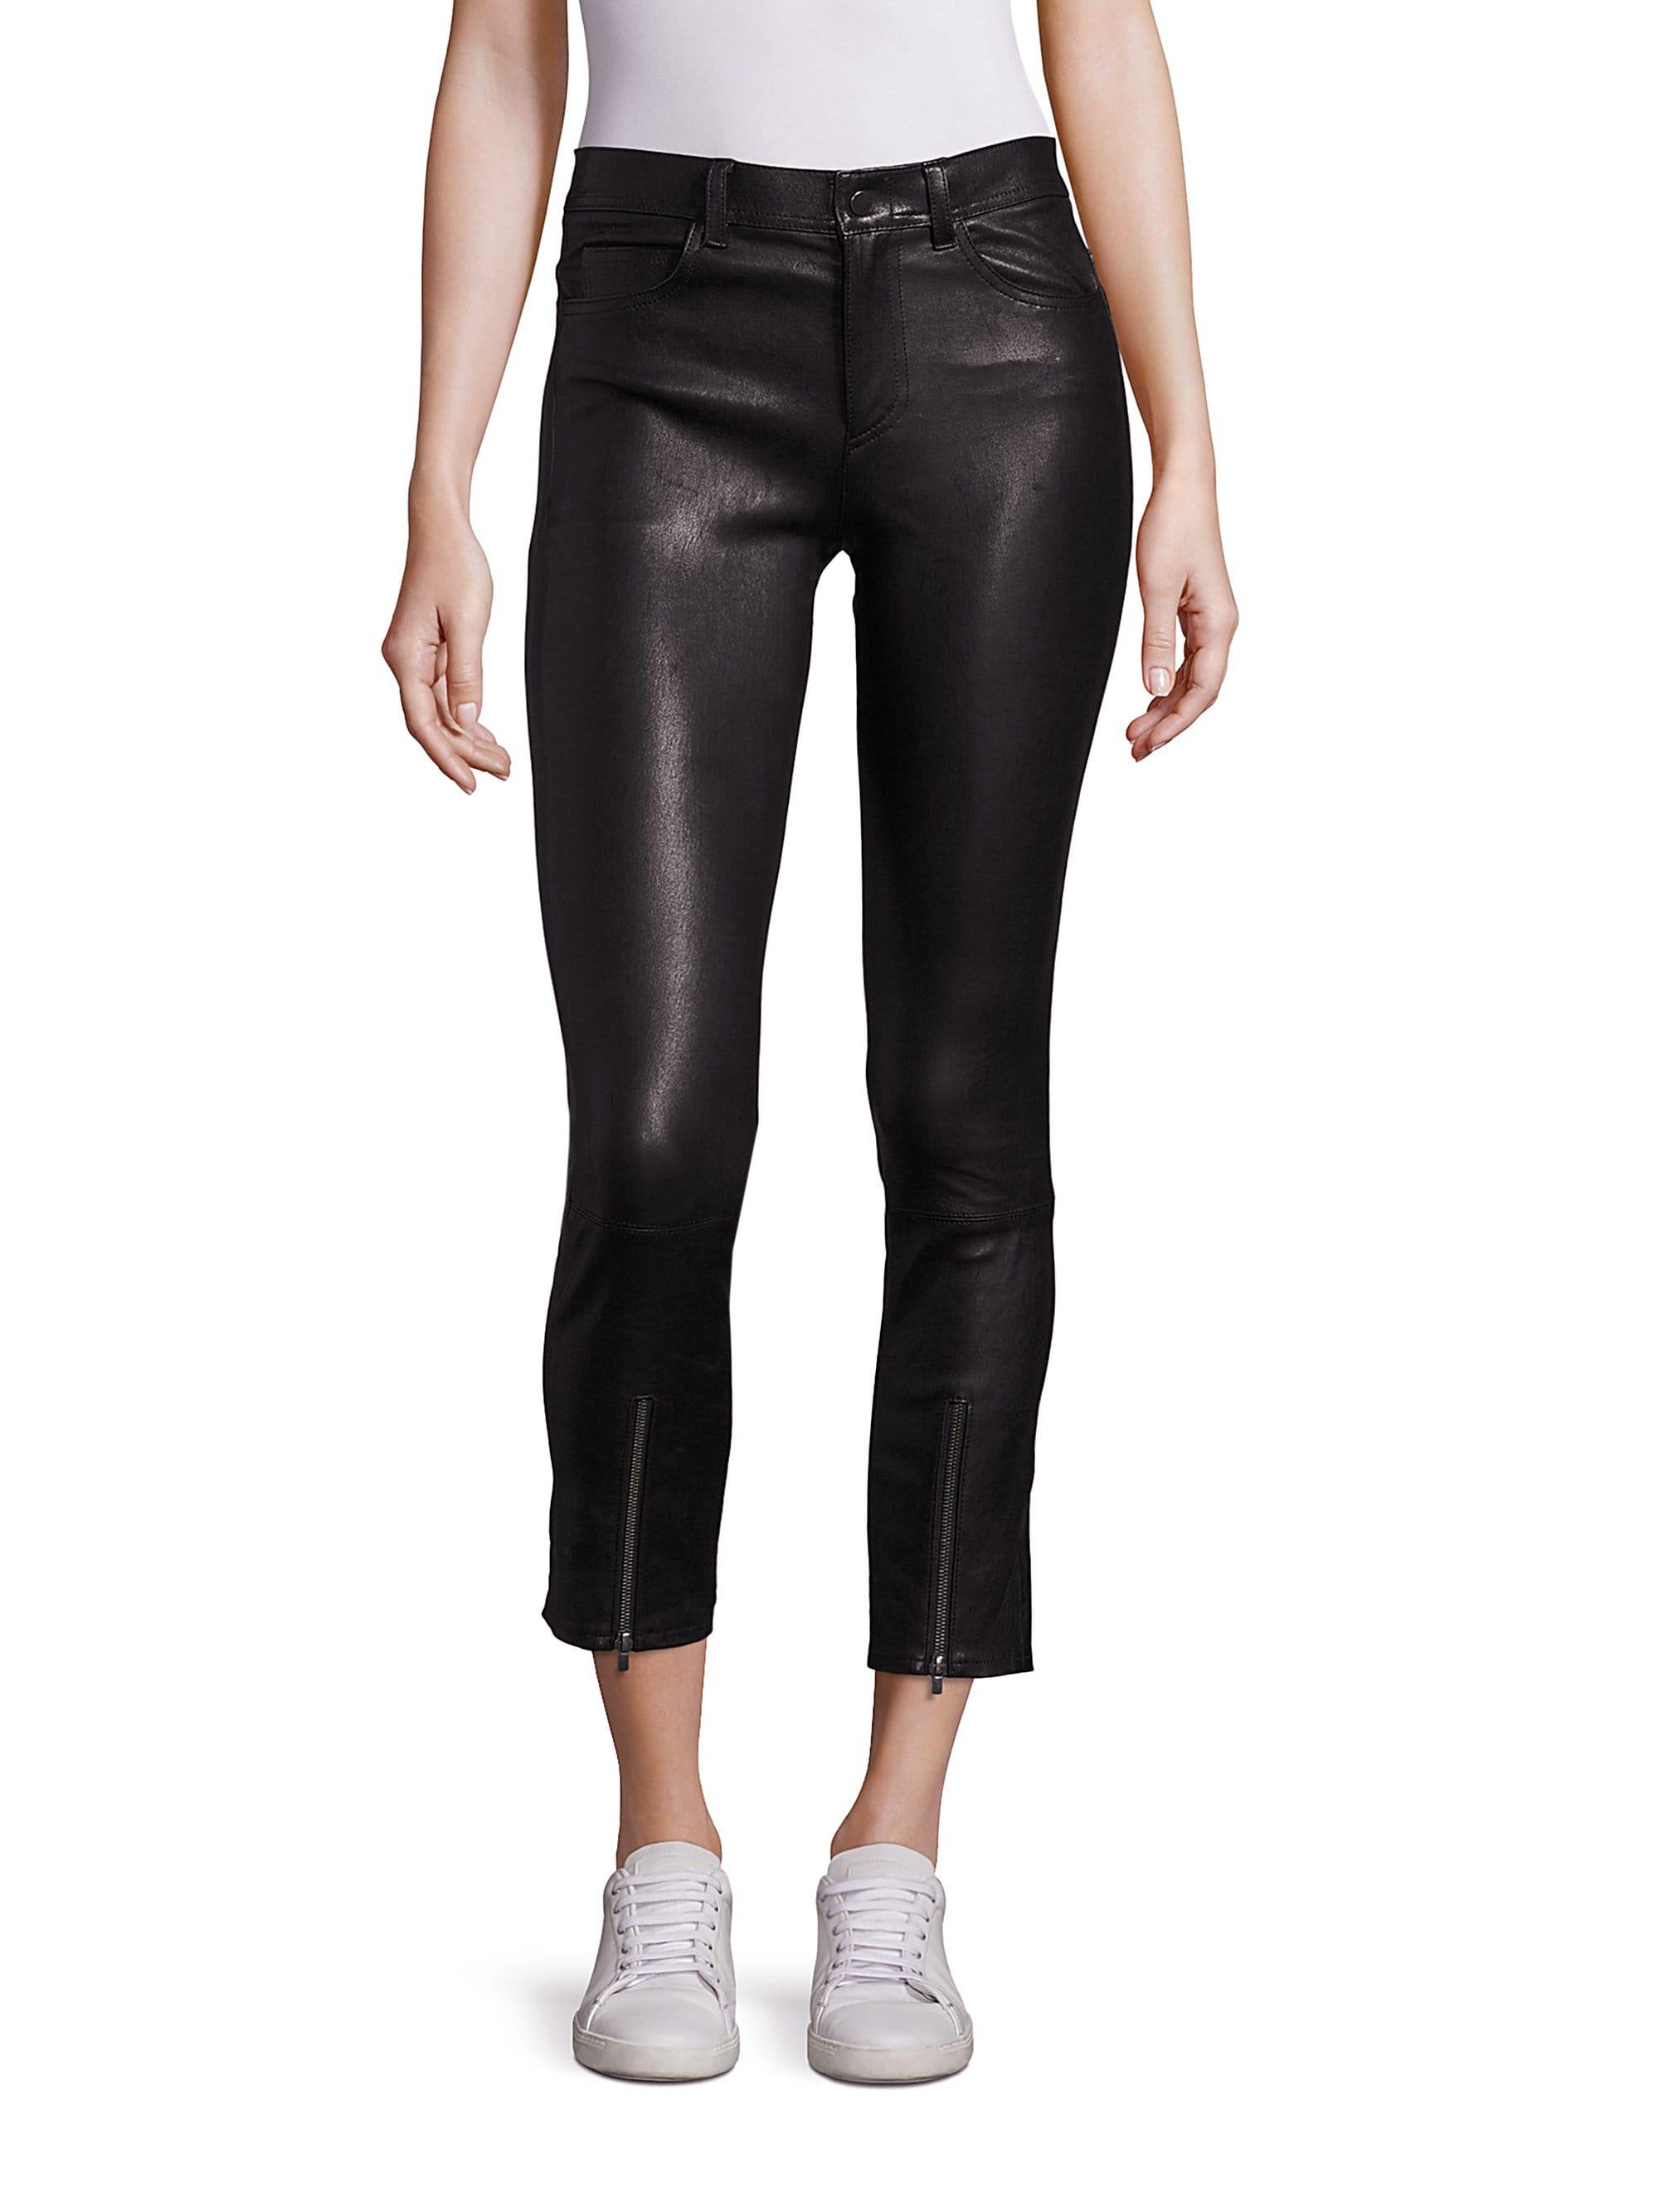 c7186fd1c8a0f5 Lyst - Helmut Lang Women's Zip Cropped Leather Leggings - Black ...